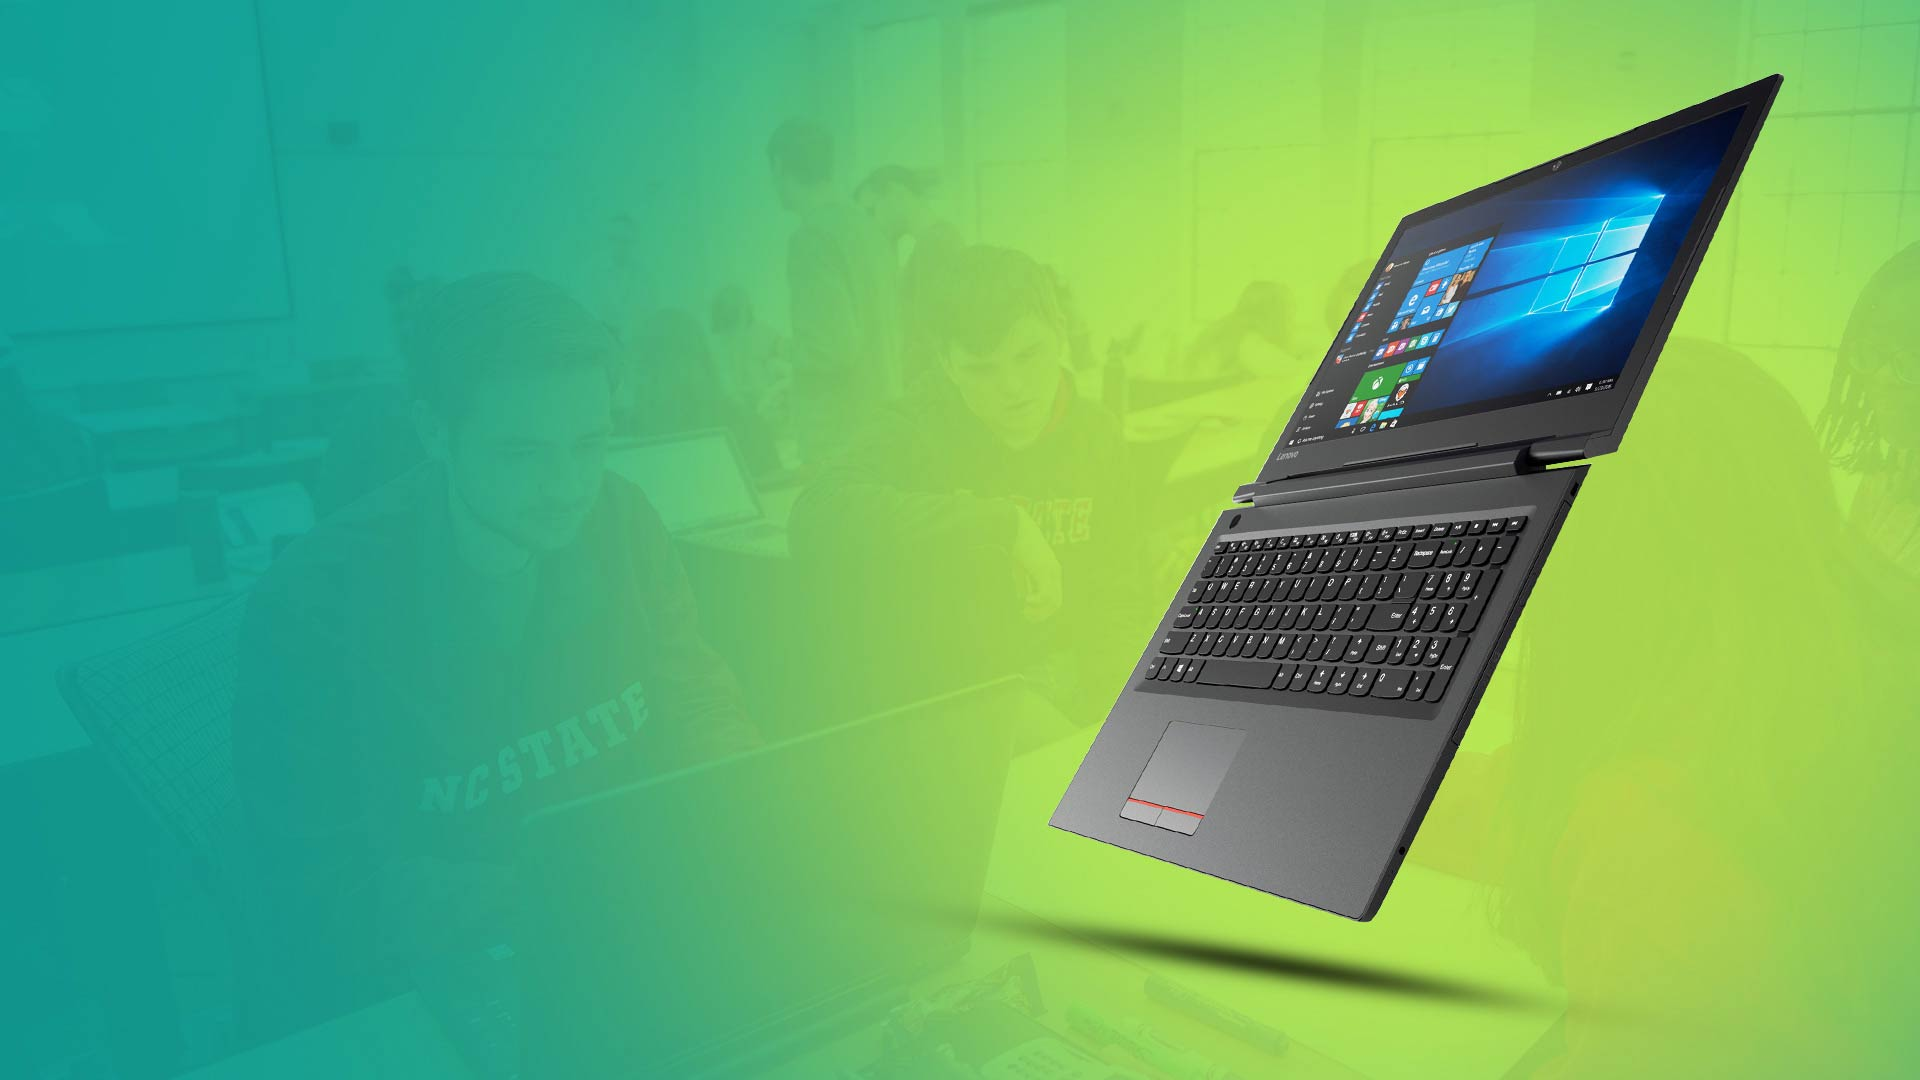 Picking up a thin and light laptop for college